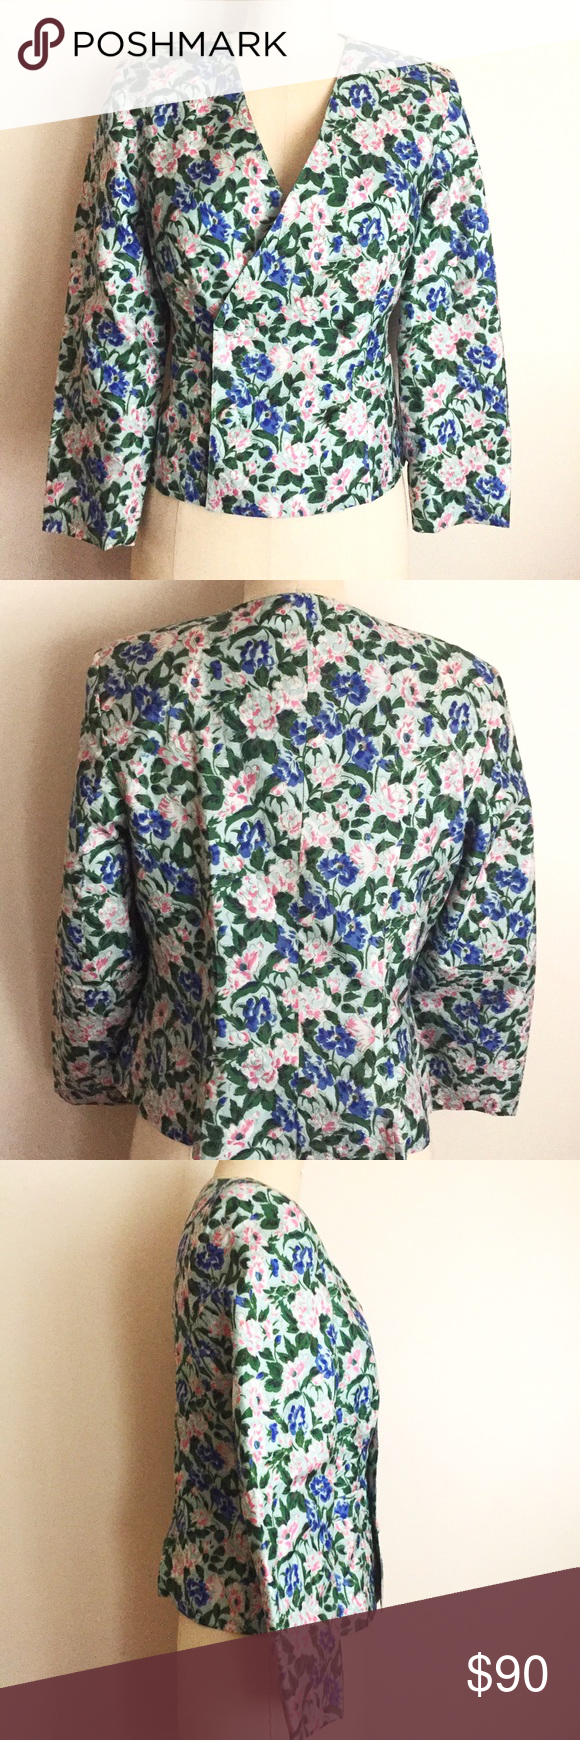 Vintage Silk Floral Print Jacket! Very modern and chic! Looks straight out of a Kate spade collection! Great condition! Measures 34 bust, 32 waist, 20 inches from top to bottom, sleeves 26 inches from centerback to wrist. Looks chic with white denim and sandals! Vintage Jackets & Coats Blazers